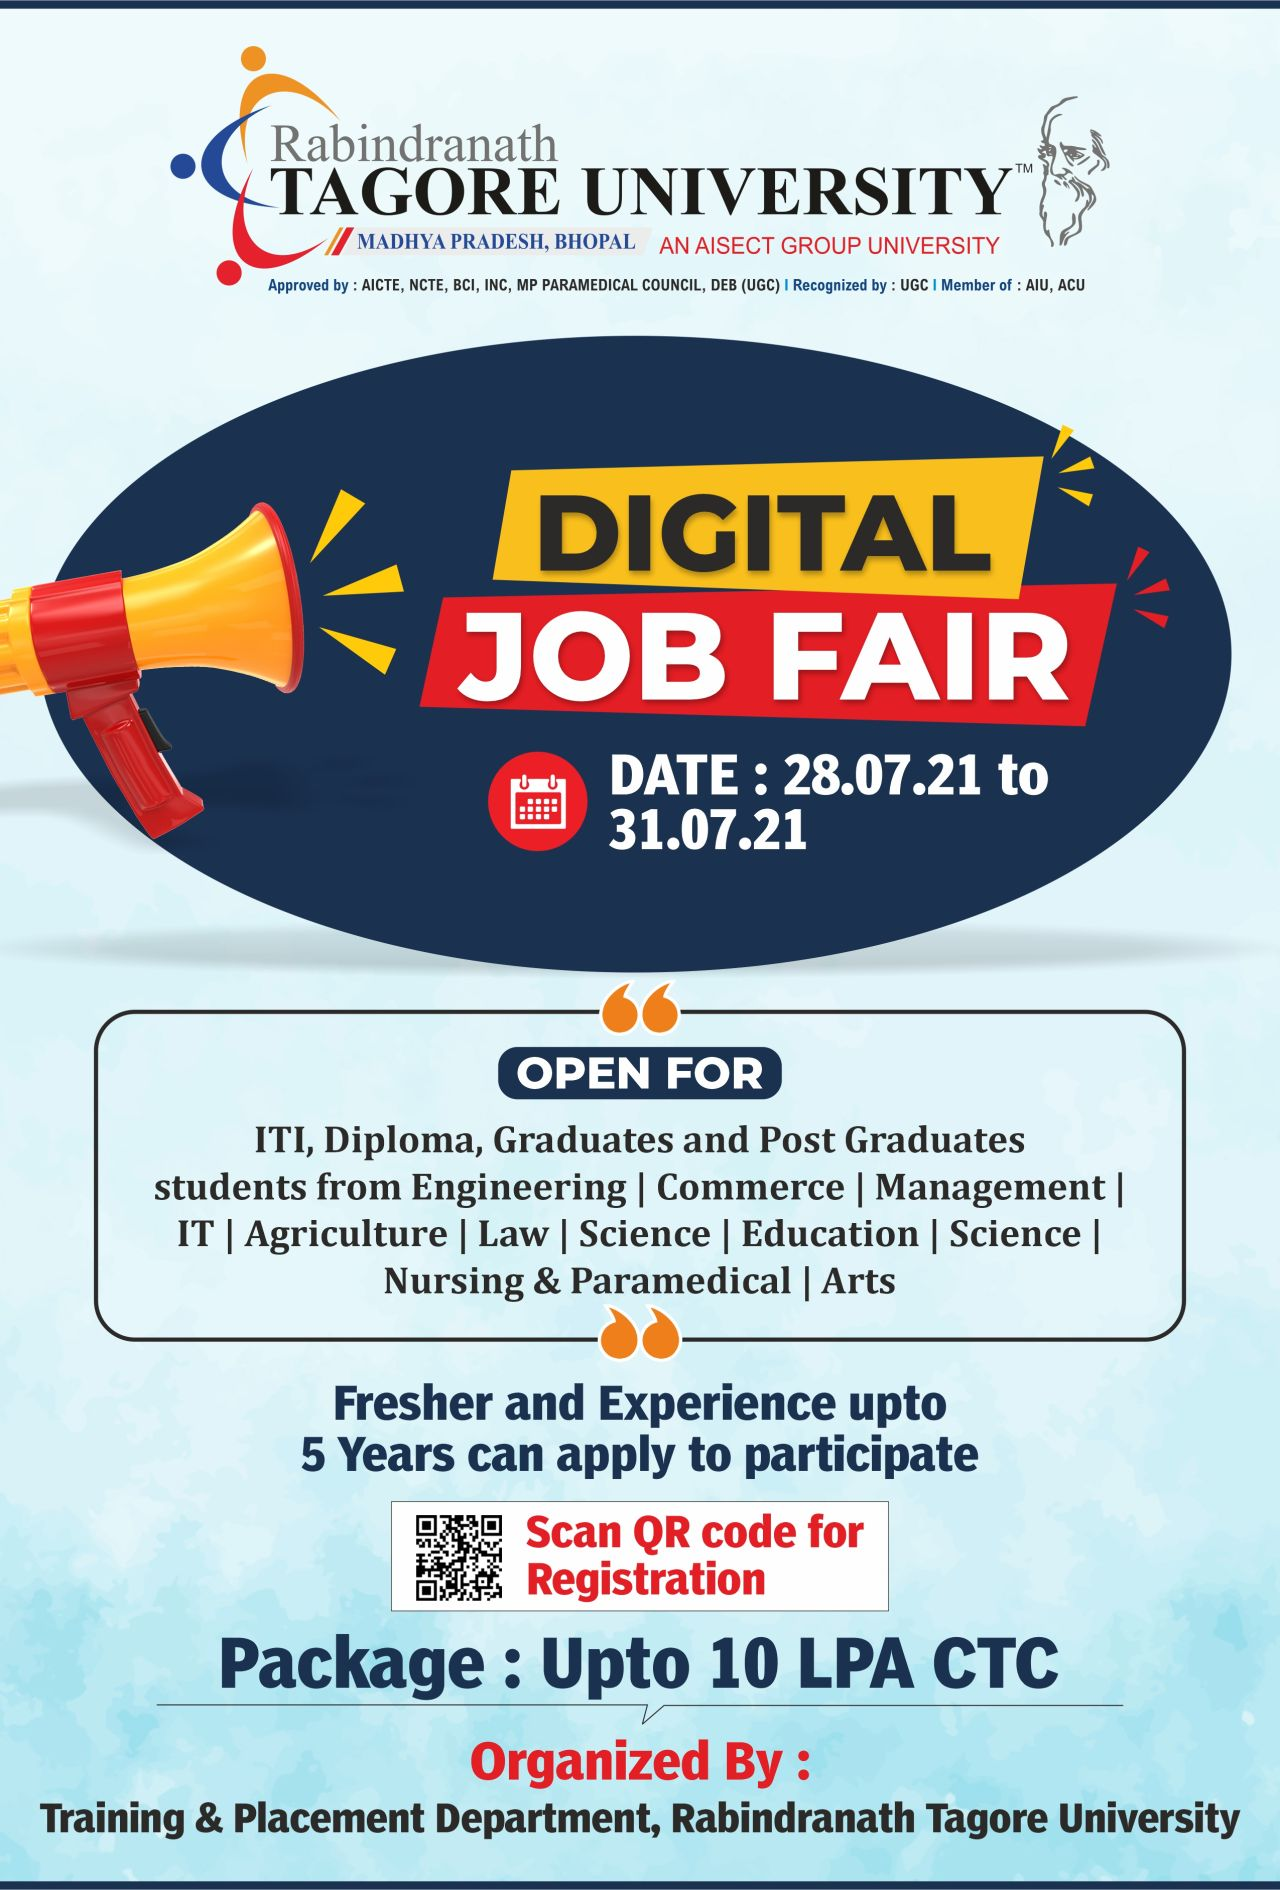 ITI, Diploma, Graduates and Post Graduates Online Jobs Fair 2021 on 28th July 2021 to 31h July 2021 | Registration Now